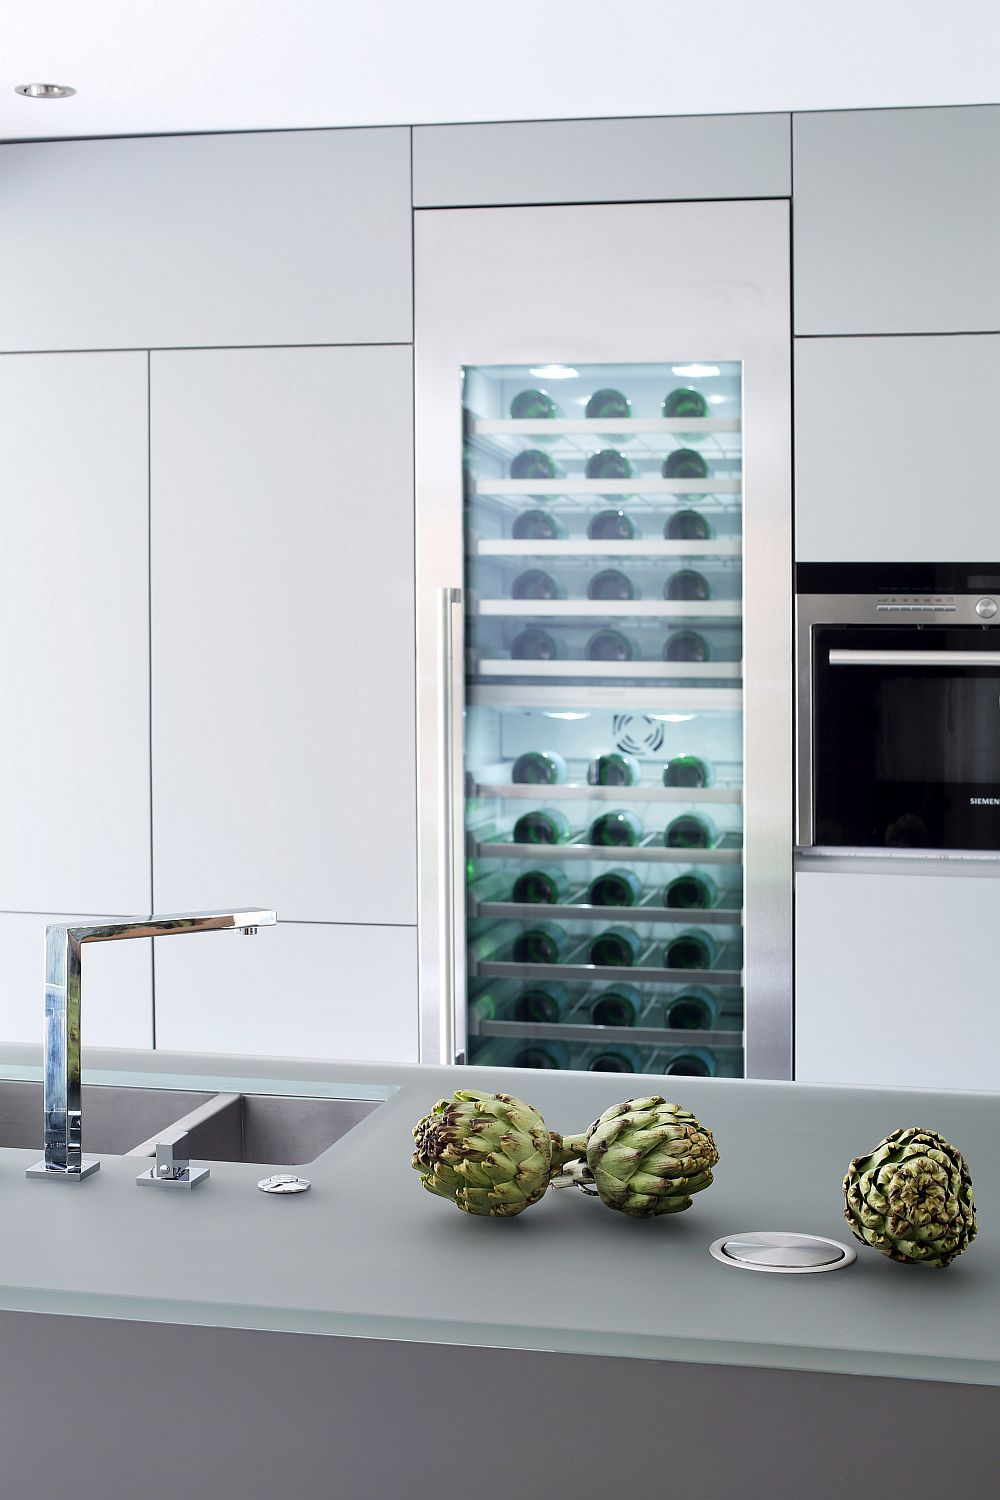 Gray frosted glass adds to the appeal of the kitchen